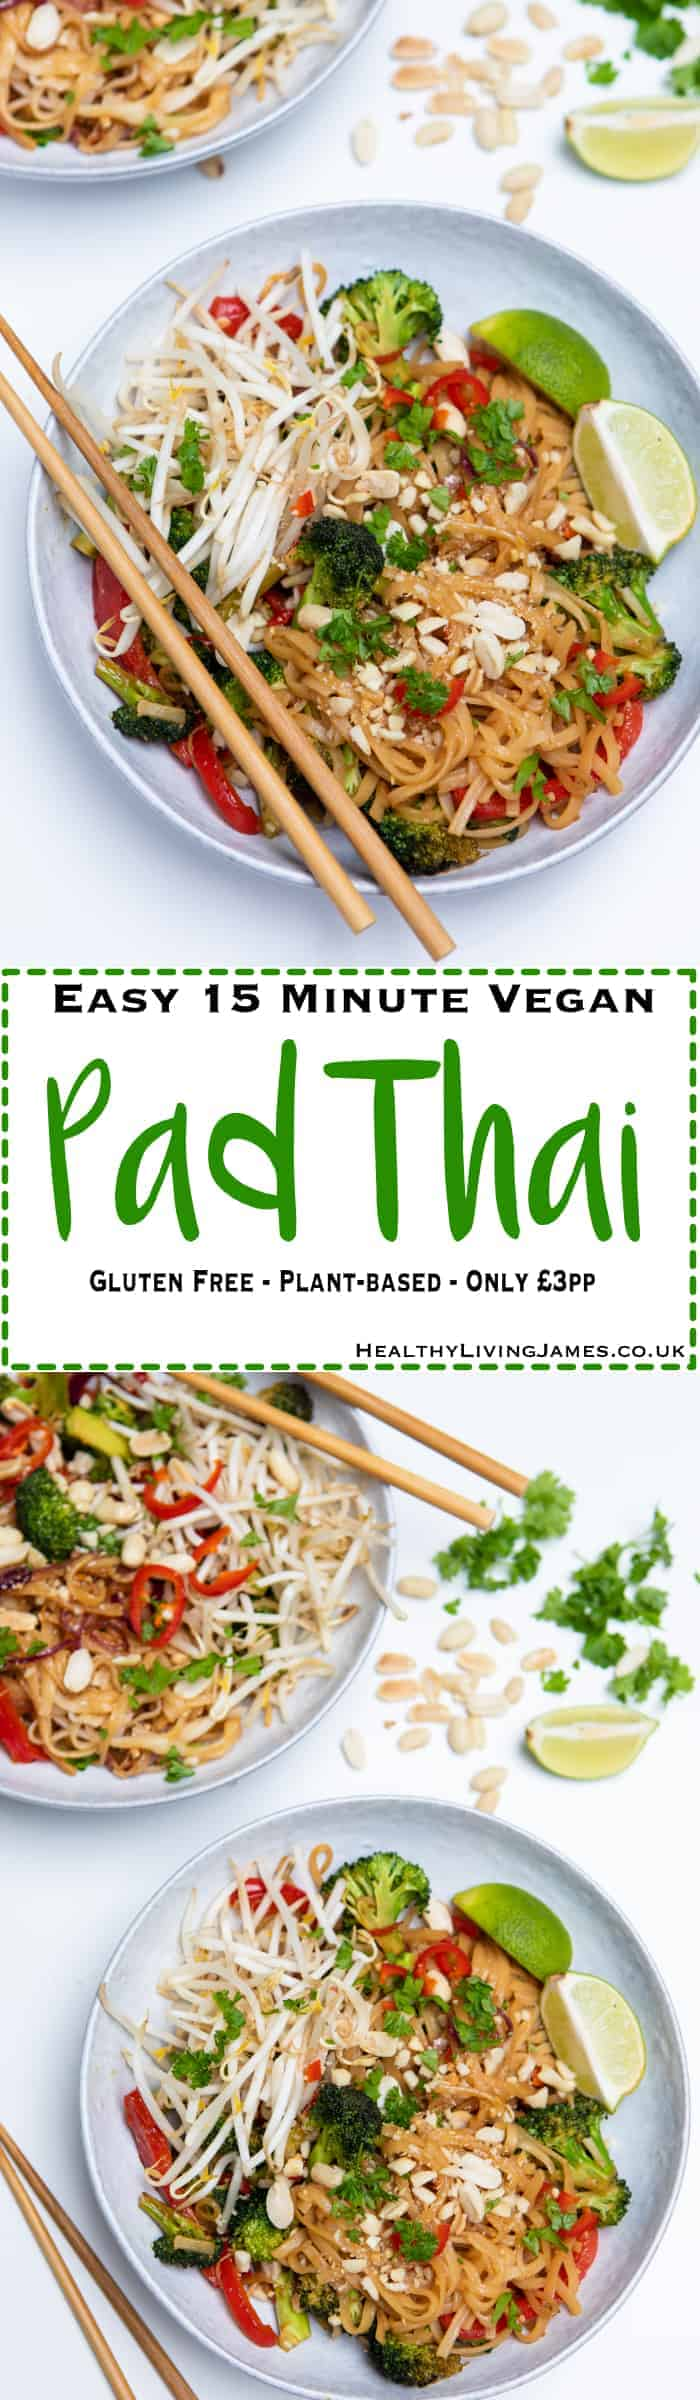 15 Minute Vegan Pad Thai Pinterest